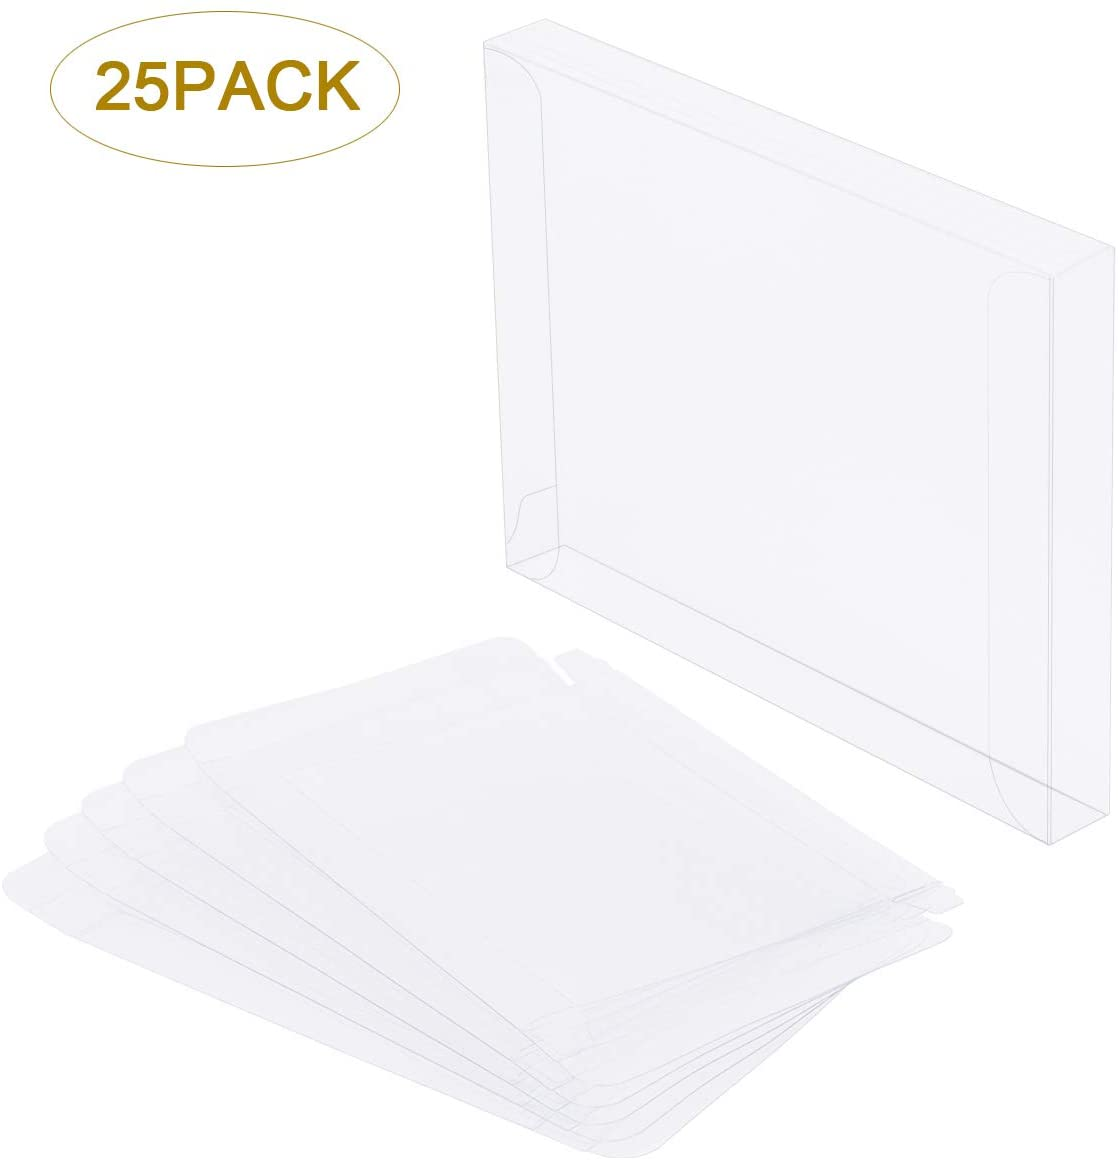 Clear Plastic Boxes for Greeting Cards Transparent Card Box Envelope for Photos Stationery Letters Paper Party Favors, 4.5 x 5.8 x 0.6 inches, 25 Pcs